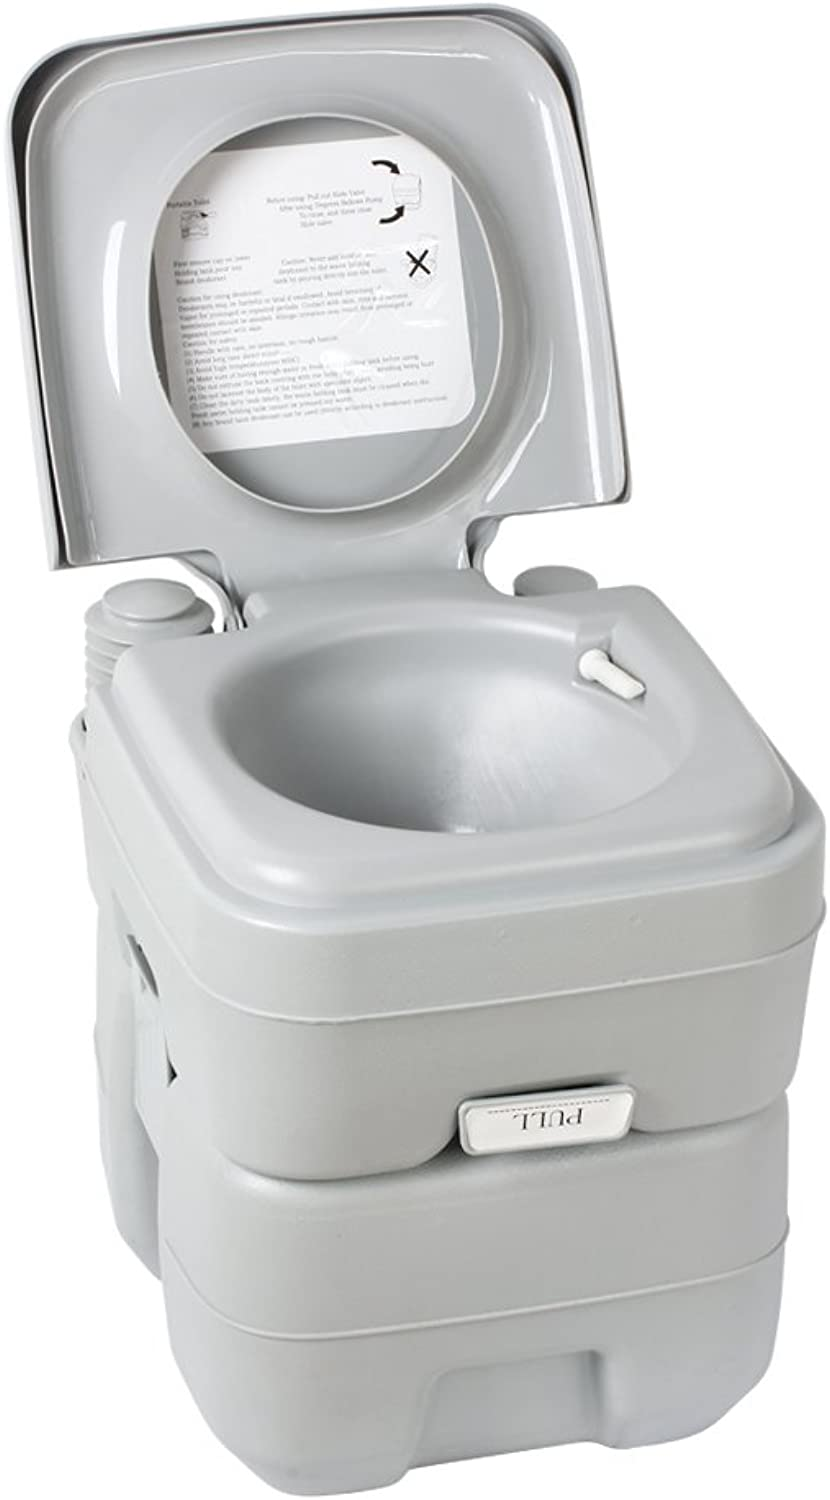 Flexzion Portable Camping Toilet 5 Gallon Recreation Flush Potty Commode 20L Capacity Sanitation Supply for Outdoor Indoor Caravan Boats Travel Hiking